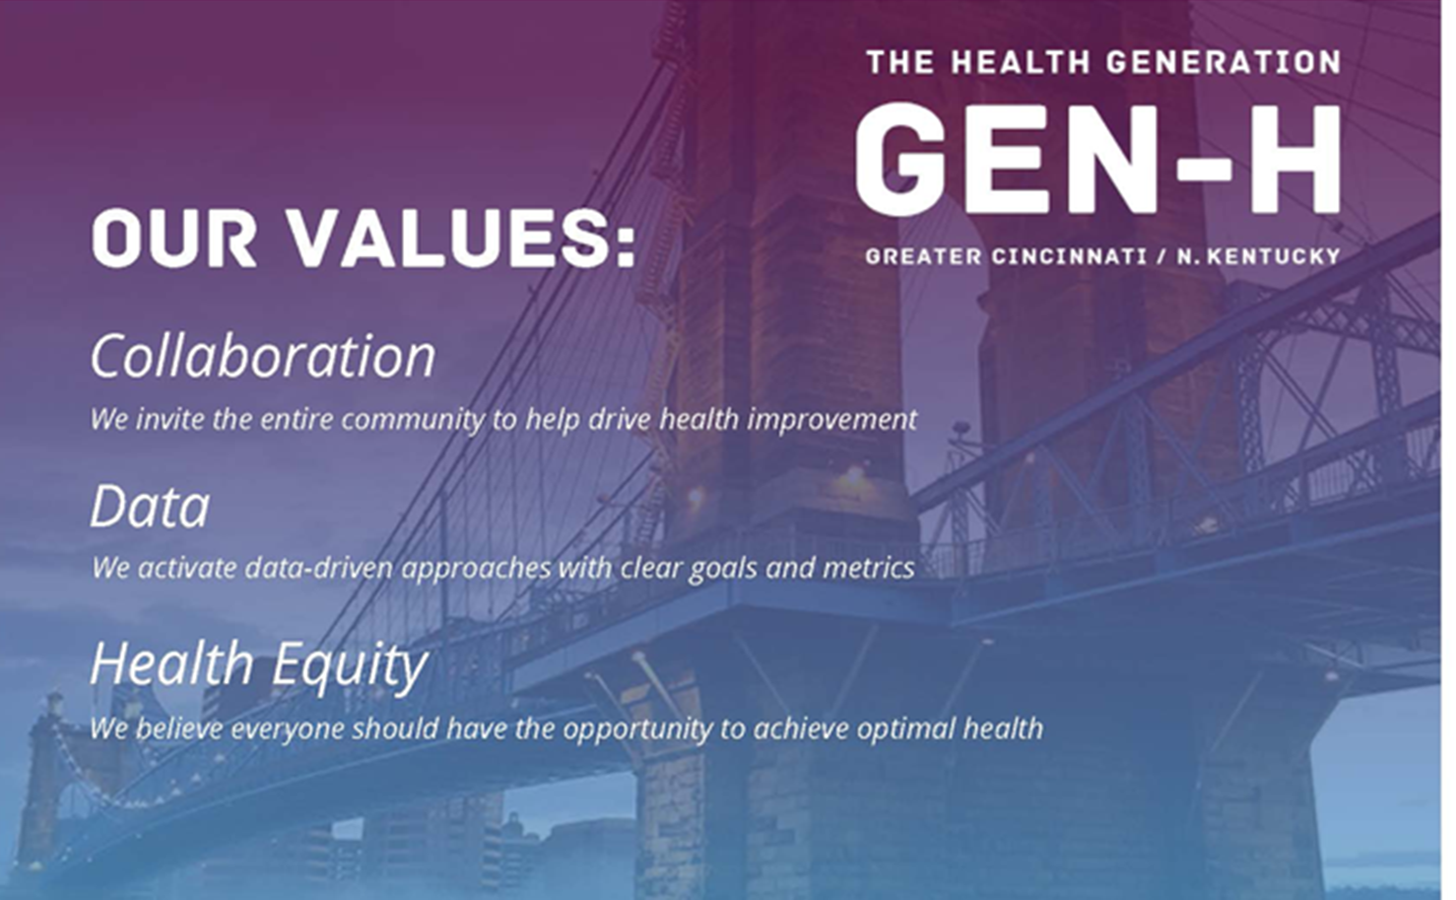 A listing of community health improvement initiative Gen-H's values, which inclue collaboration, data and health equity.